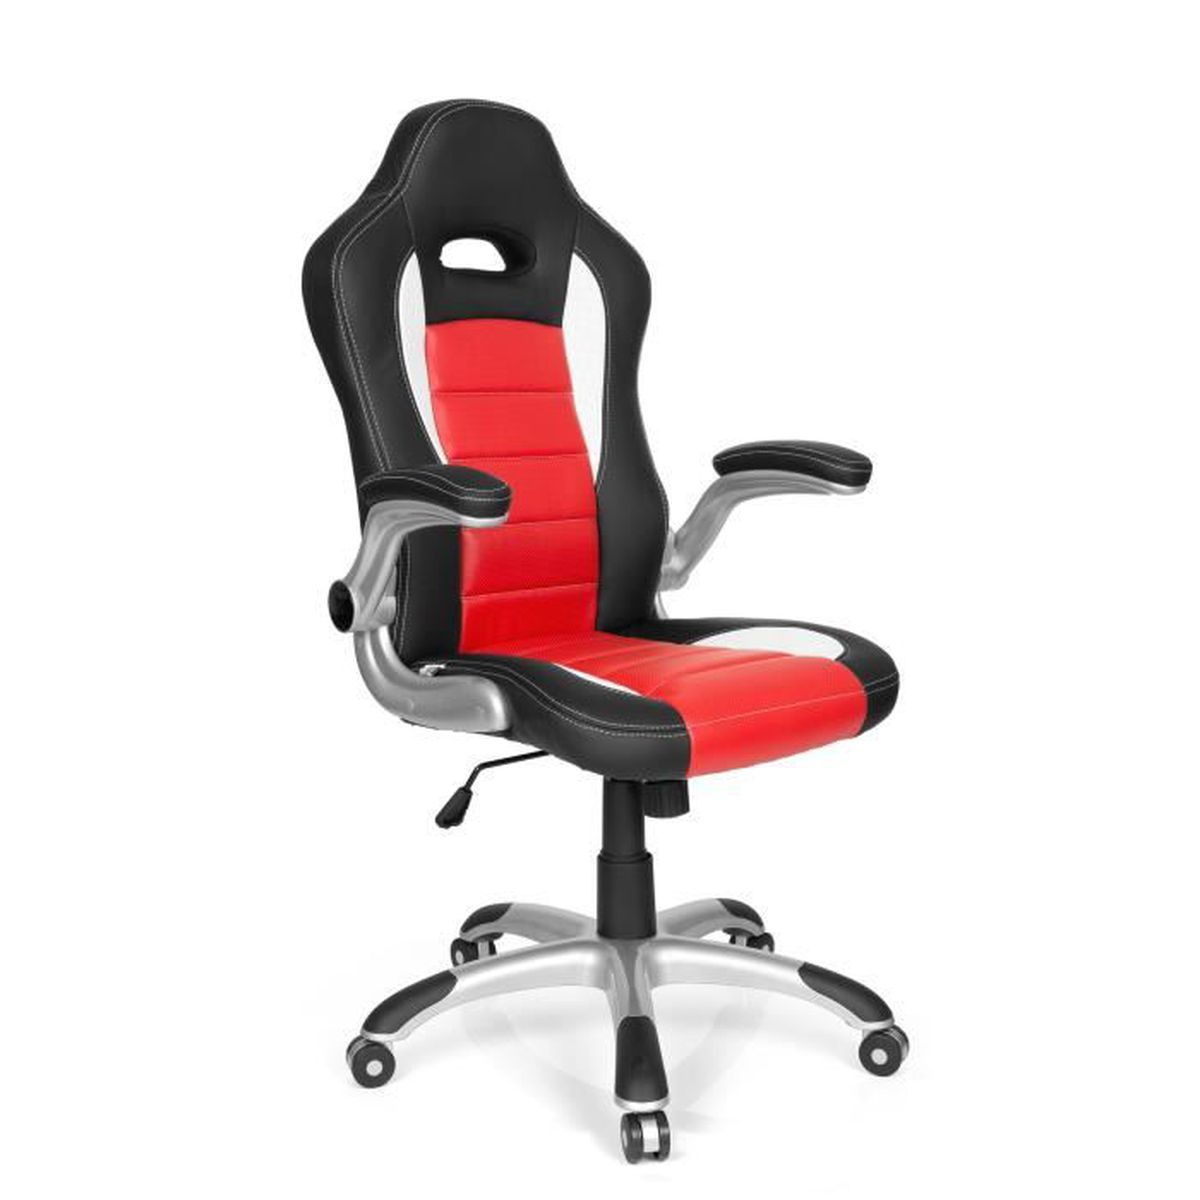 chaise gaming chaise de bureau racer sport rouge noir hjh office achat vente chaise de. Black Bedroom Furniture Sets. Home Design Ideas